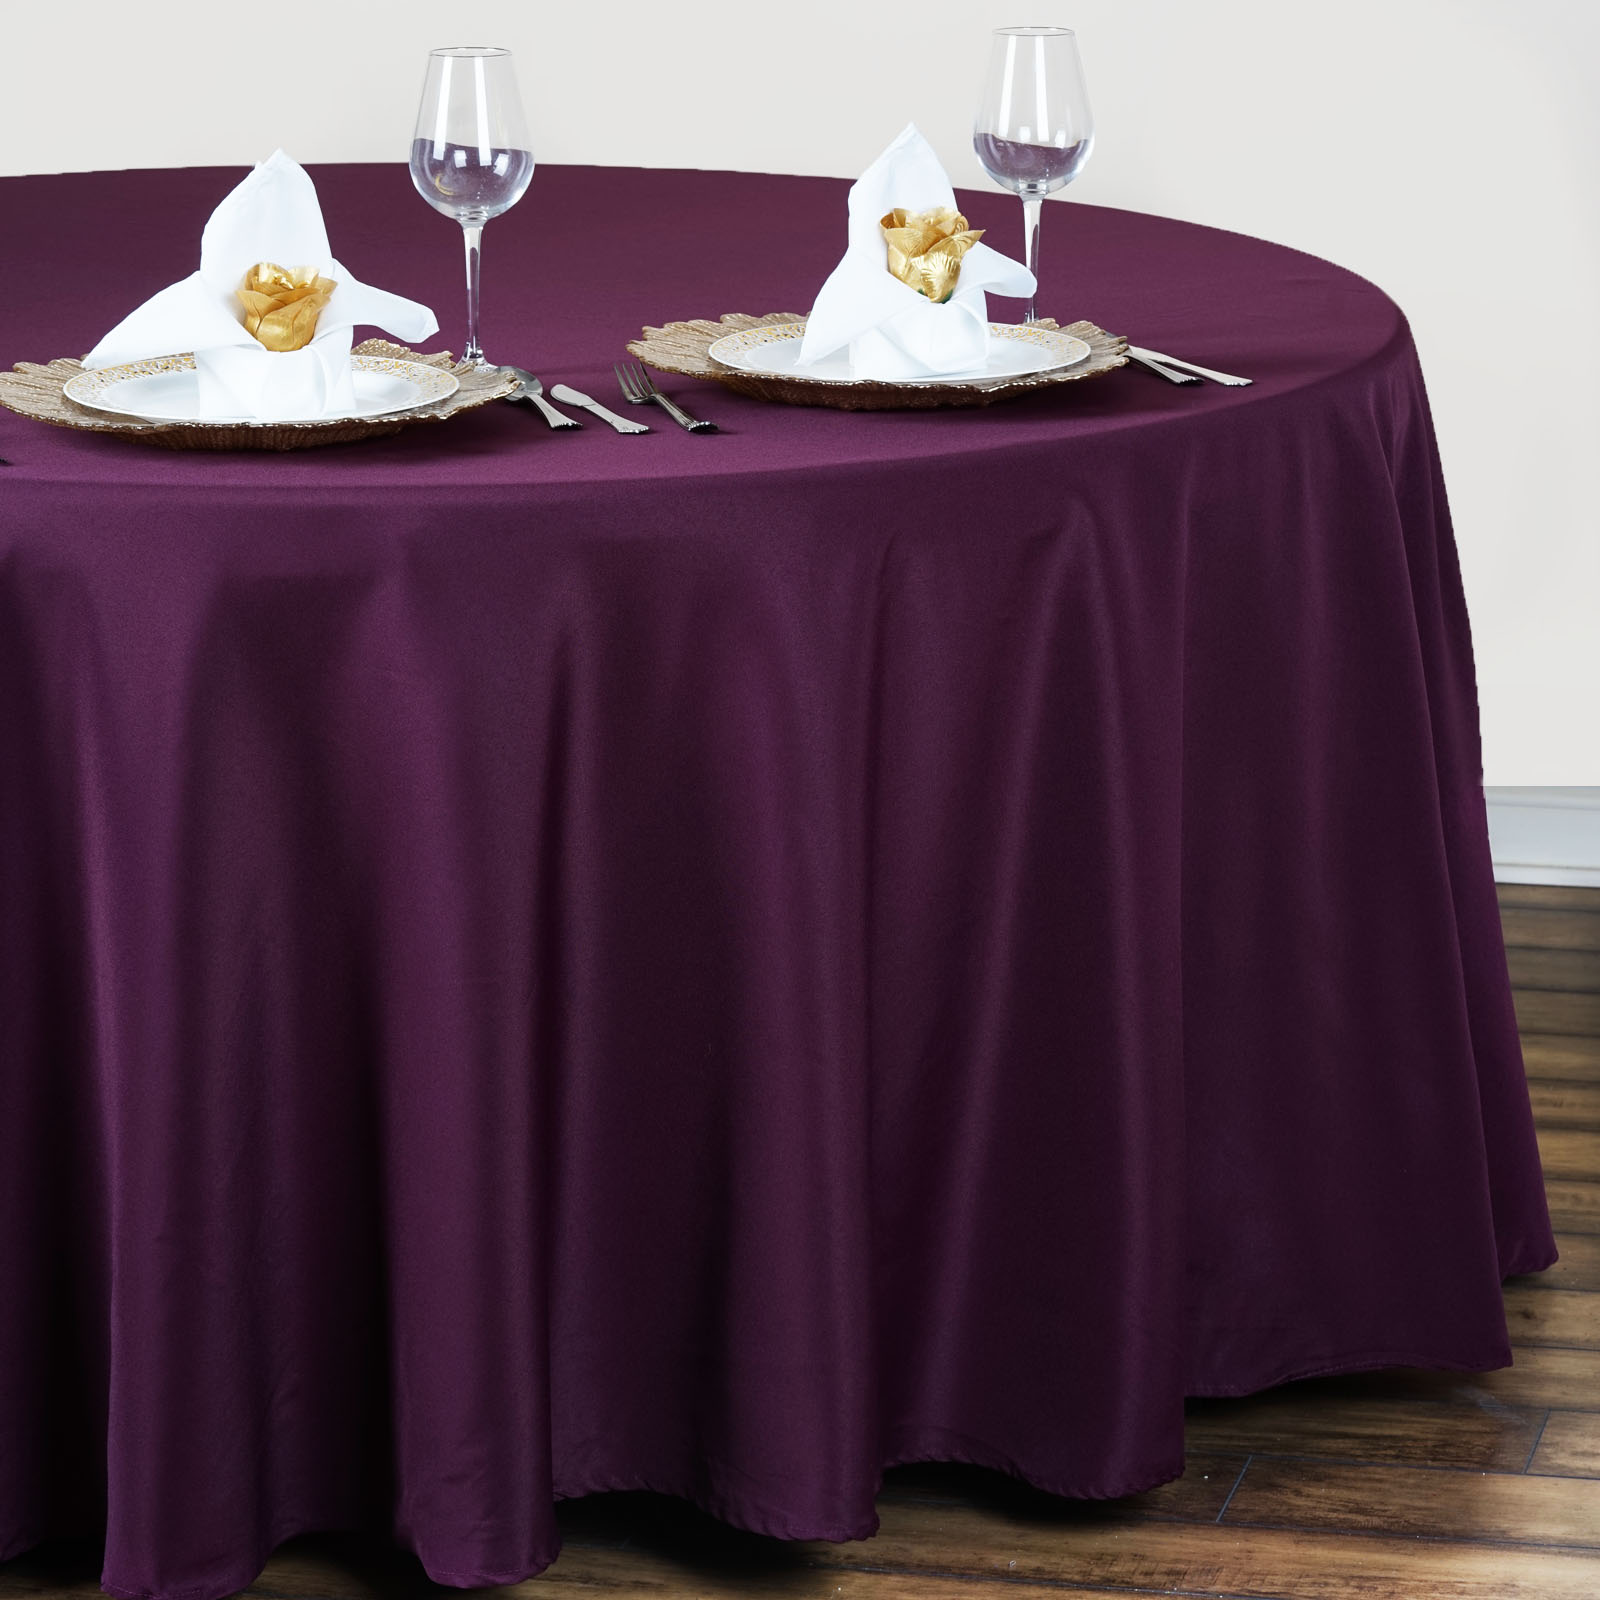 15 pcs Wholesale Lot 120quot ROUND POLYESTER TABLECLOTHS Fine  : tab120egg02 from www.ebay.com size 1600 x 1600 jpeg 227kB